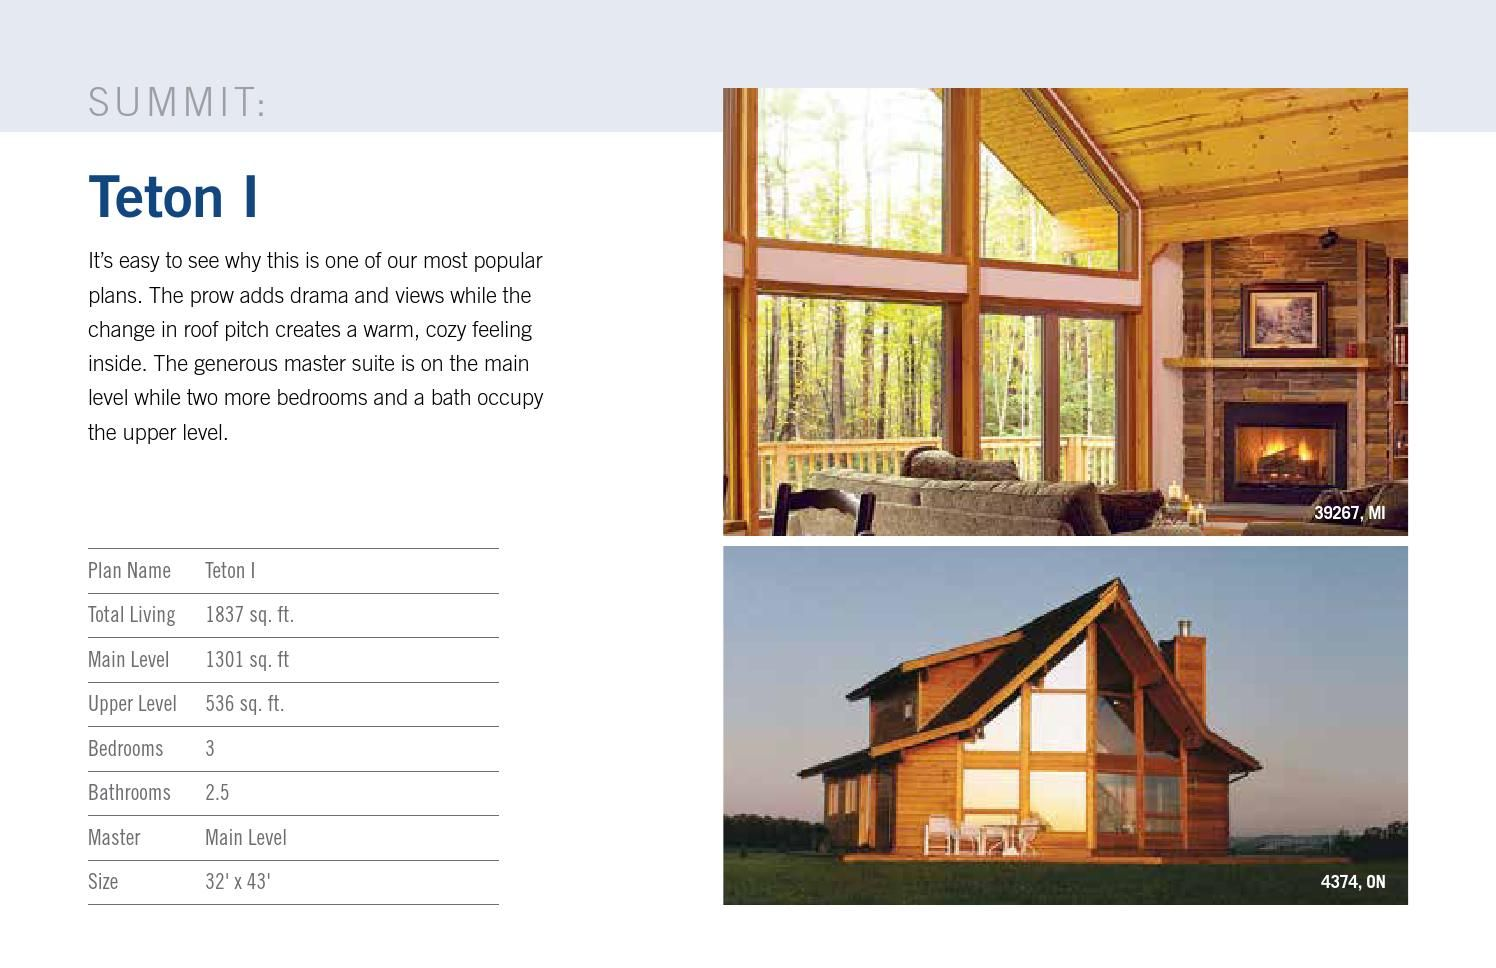 Small Treasures Home Plans by Lindal Cedar Homes   Nice ... on cedar wood house plans, glass front home plans, turkel floor plans, home floor plans, jim walter home plans, post and beam home plans, linda l elements home plans, 24x24 cabin plans,